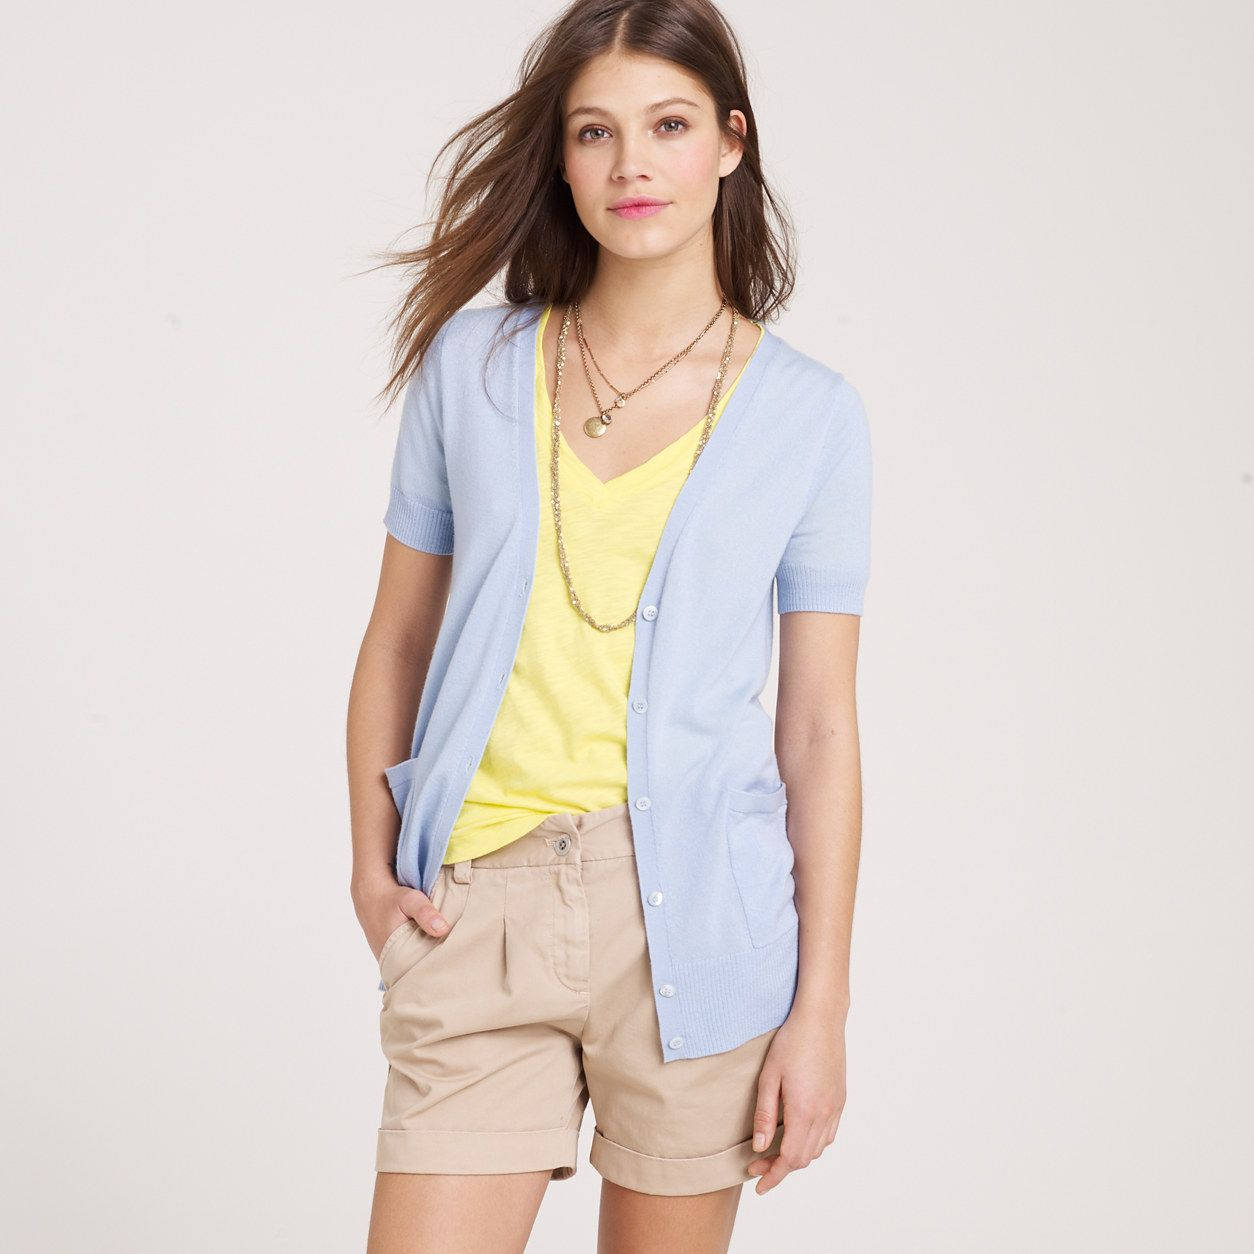 J. Crew Linen Ditzy Floral Tee in BLUE Size XS | Color: Blue ...